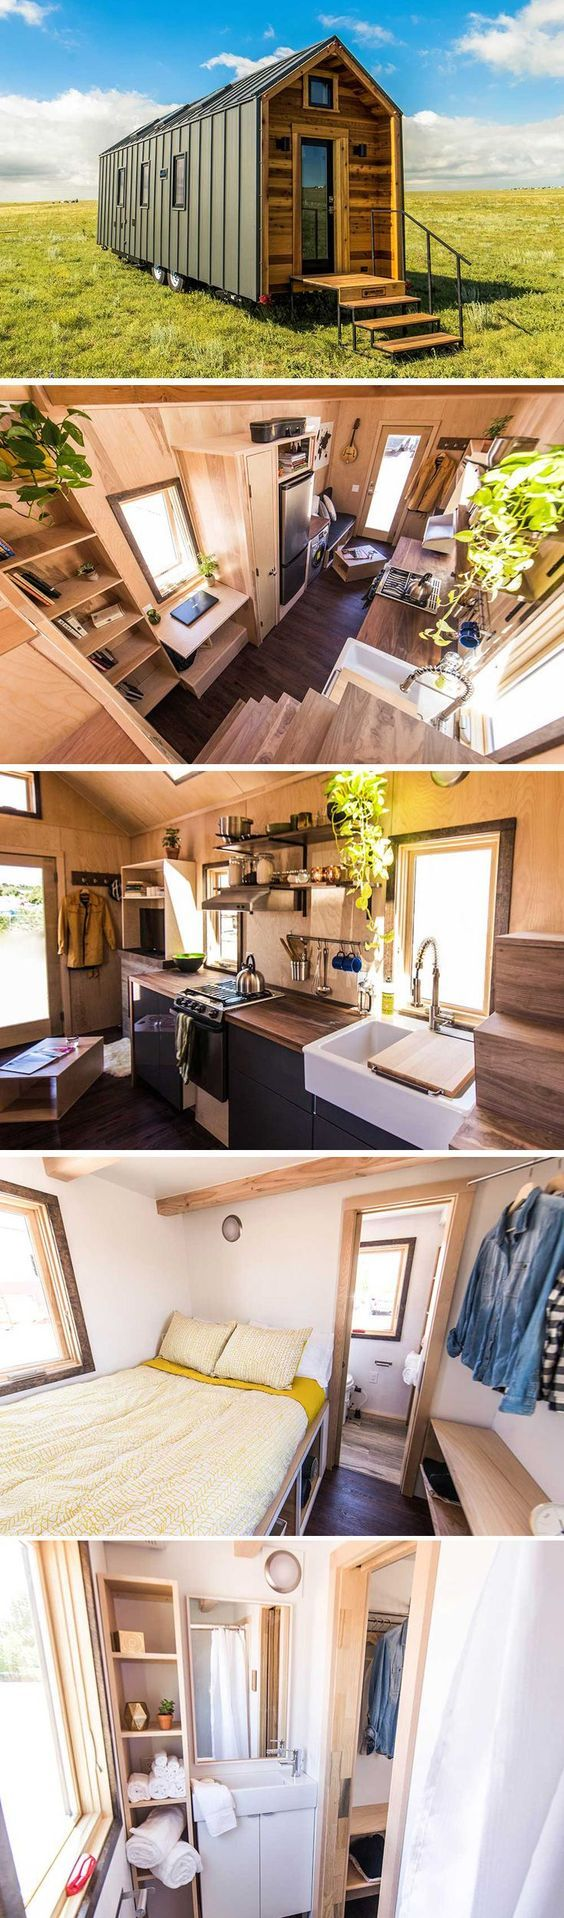 A 218 square foot tiny house featuring a standing seam metal roof and siding exterior. The unique wood and metal exterior create a modern aesthetic.